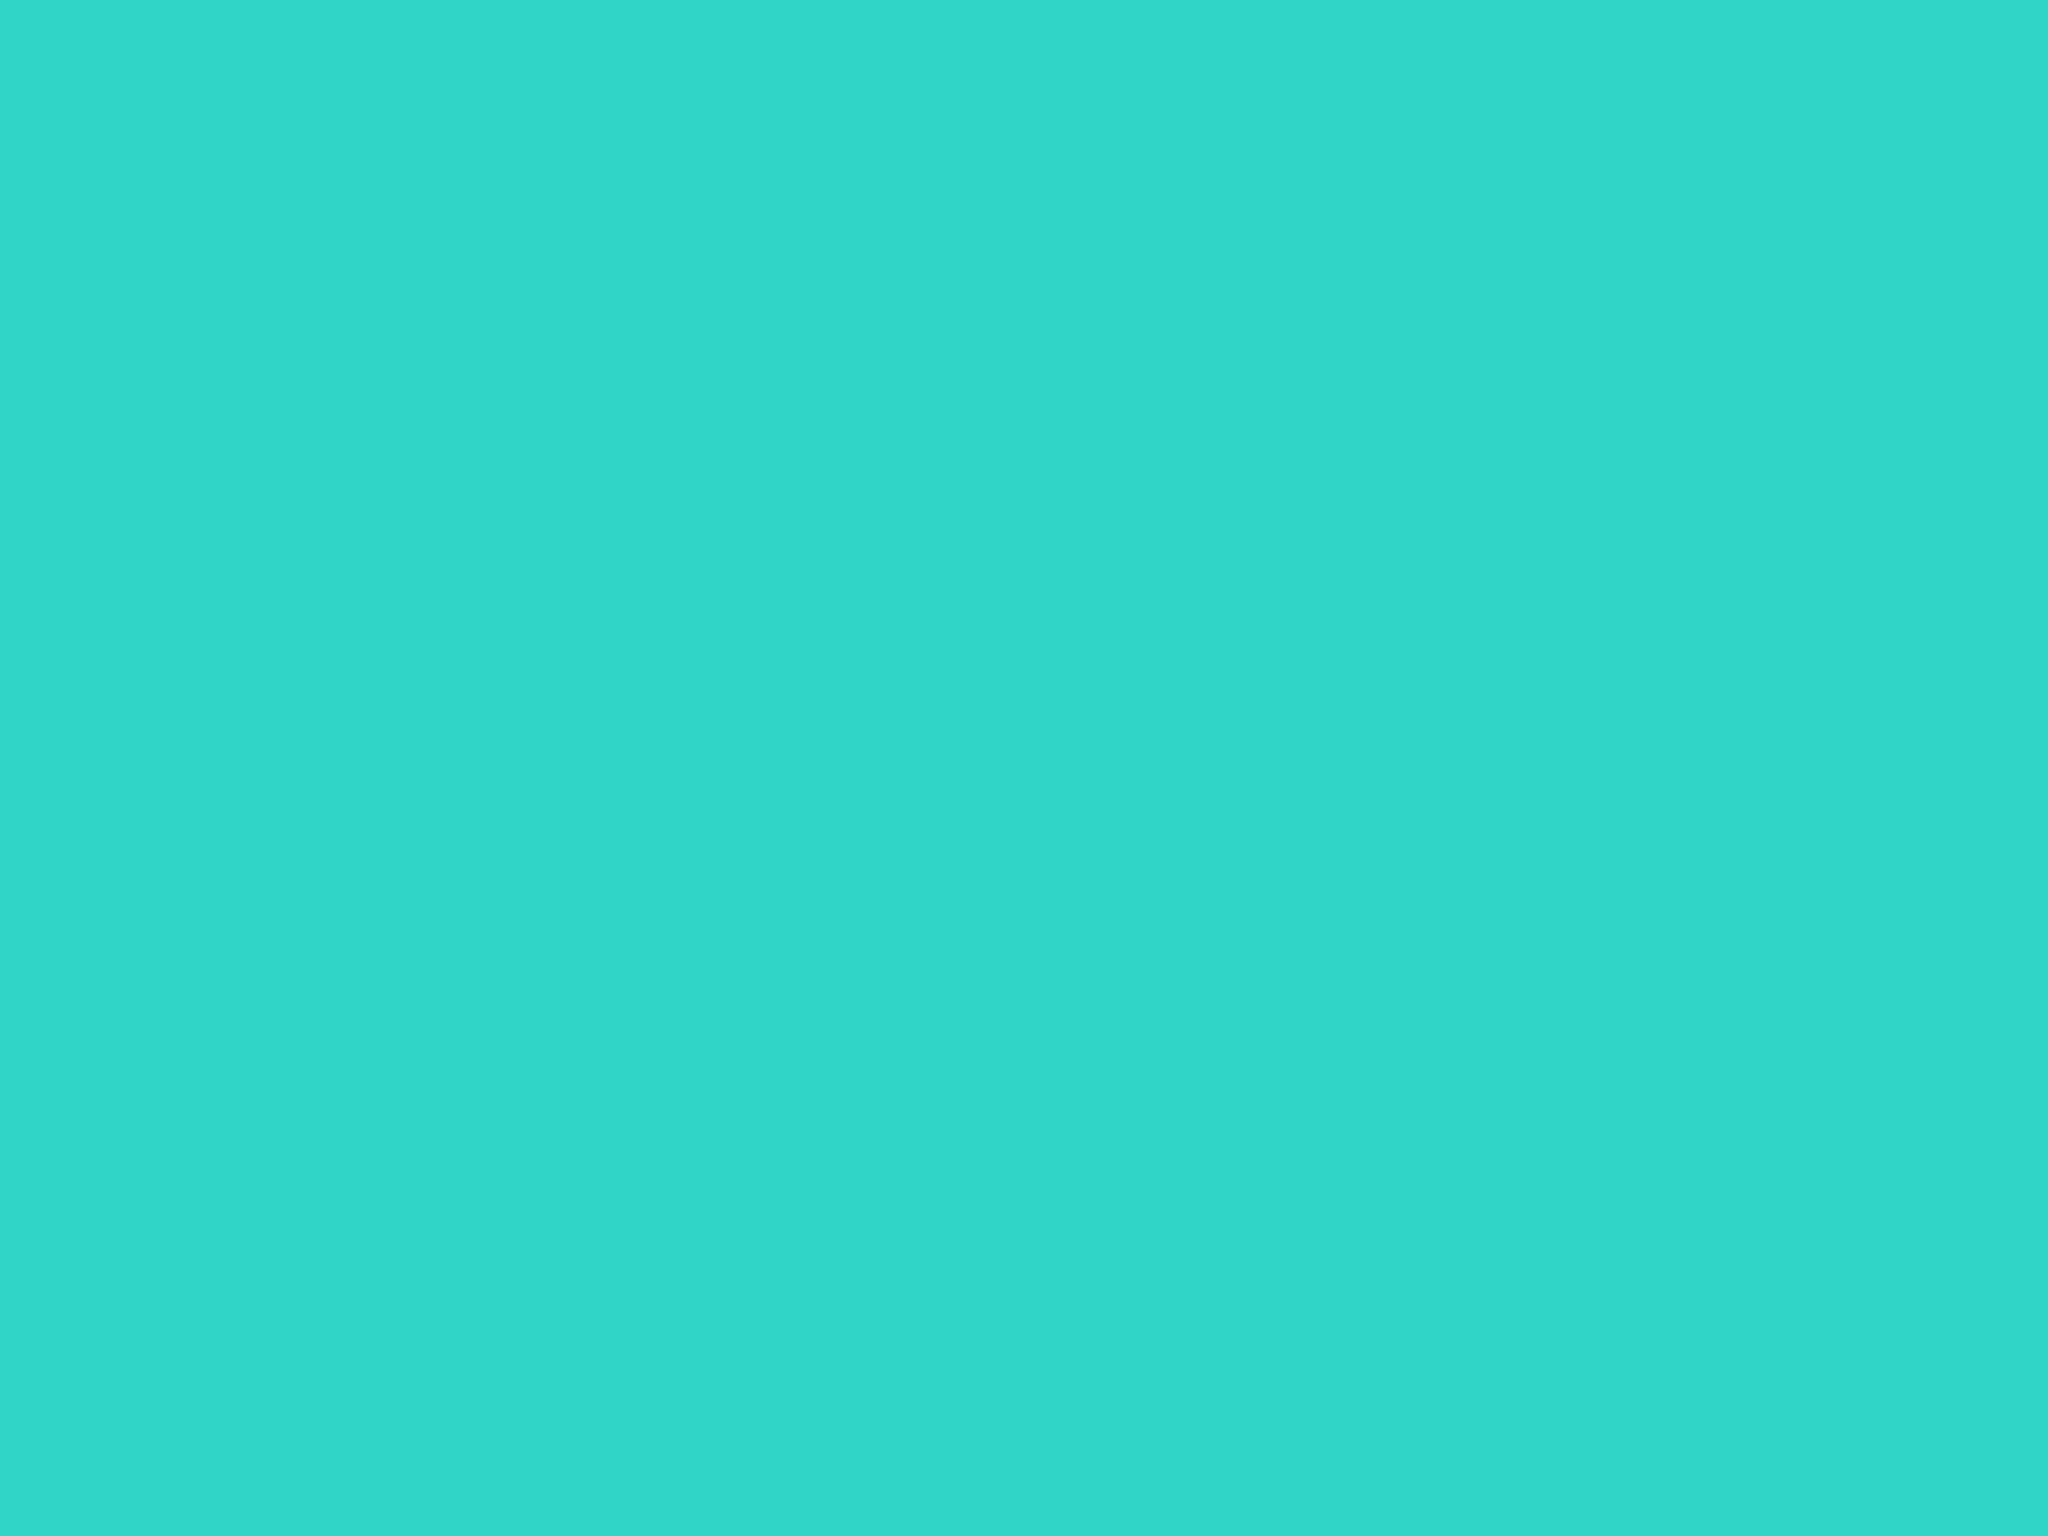 2048x1536 Turquoise Solid Color Background